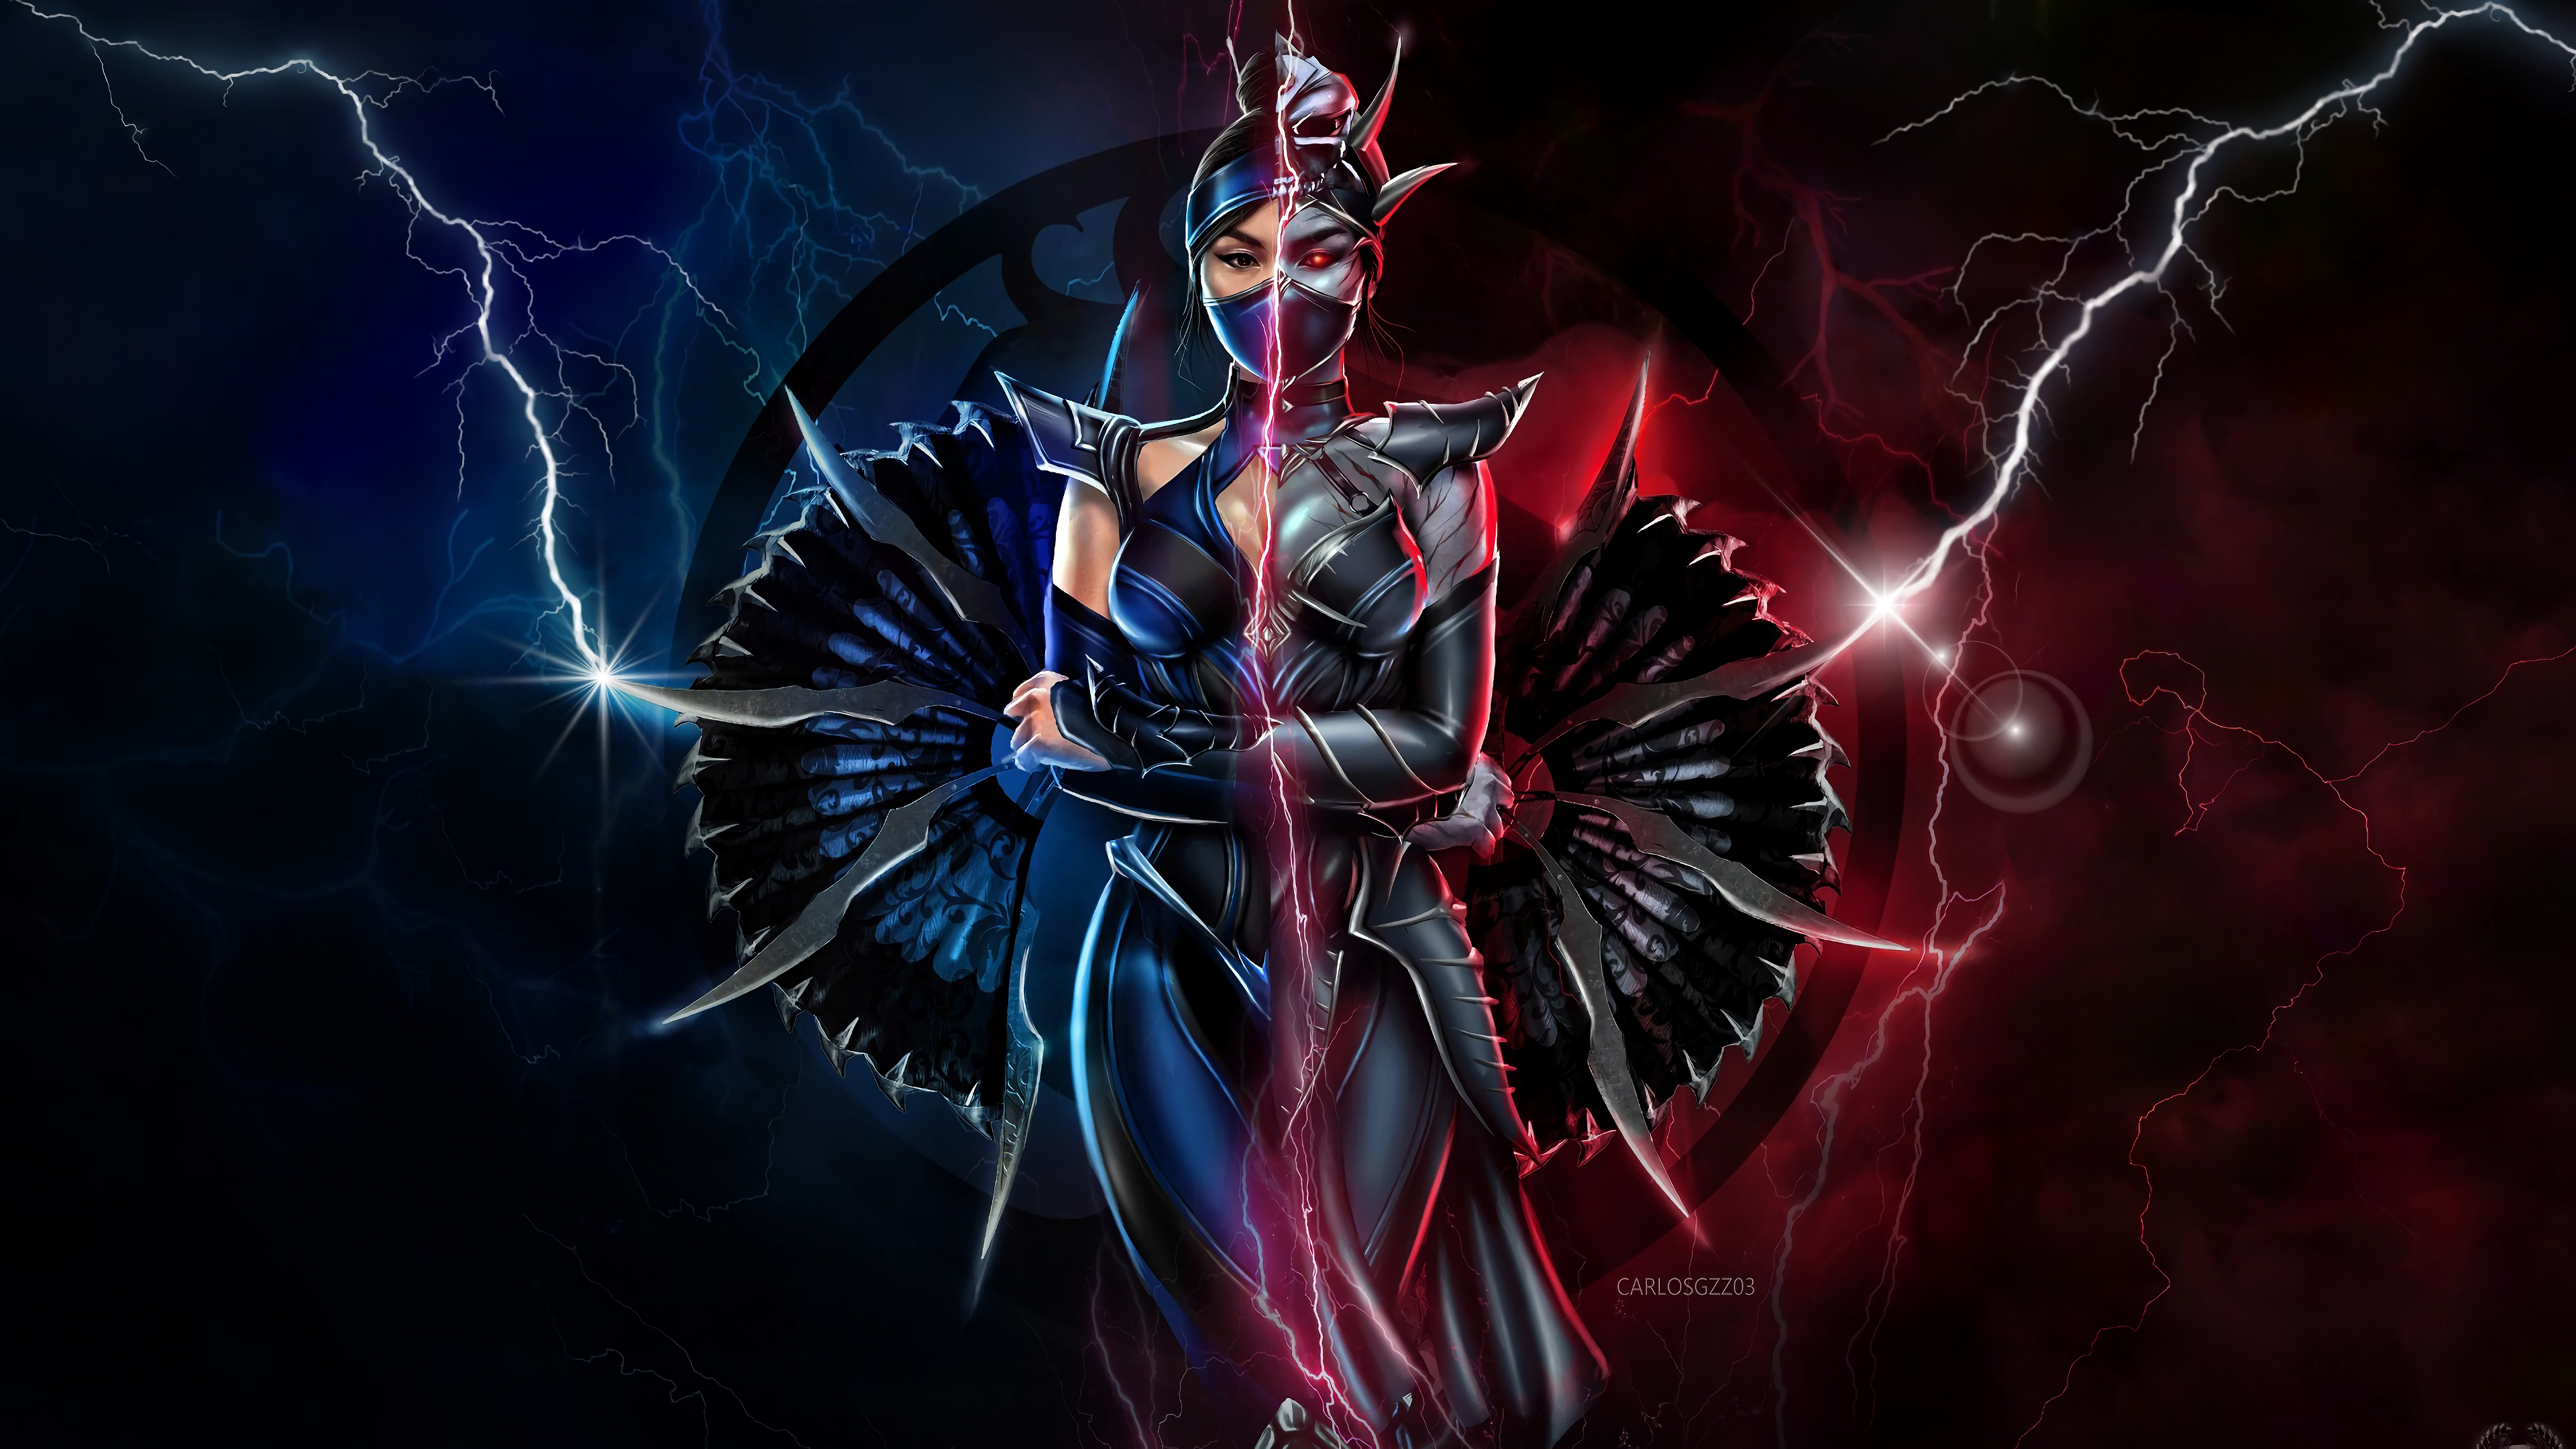 2560x1080 Kitana Mortal Kombat 11 2560x1080 Resolution Wallpaper Hd Artist 4k Wallpapers Images Photos And Background